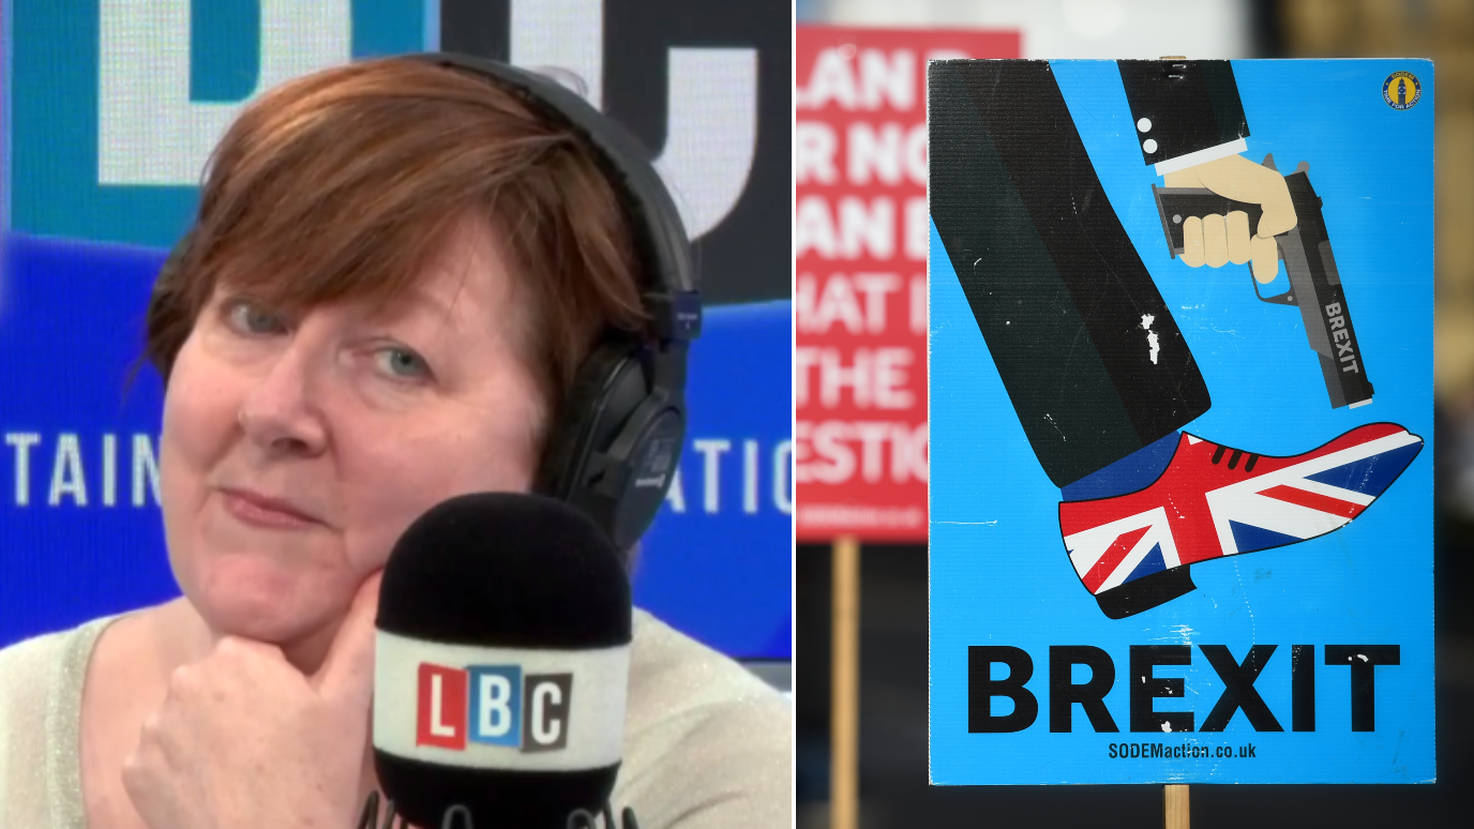 This Canadian's Bemused Take On Brexit Had Listeners In Hysterics